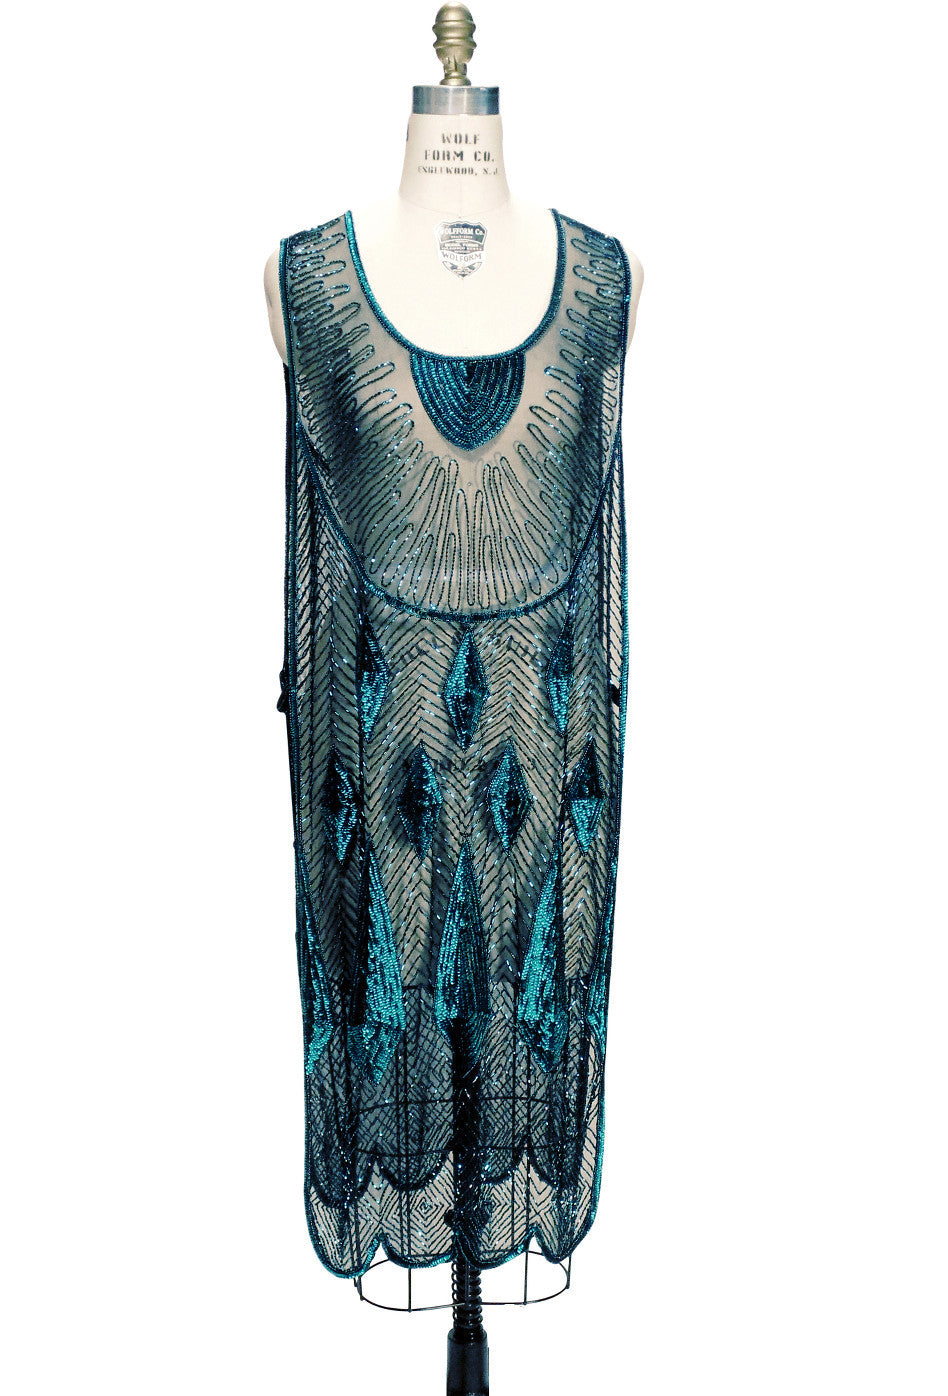 ... Beaded 1920s Tabard Gatsby Gown   The Bijou   Tourmaline Jet   The Deco  Haus ...